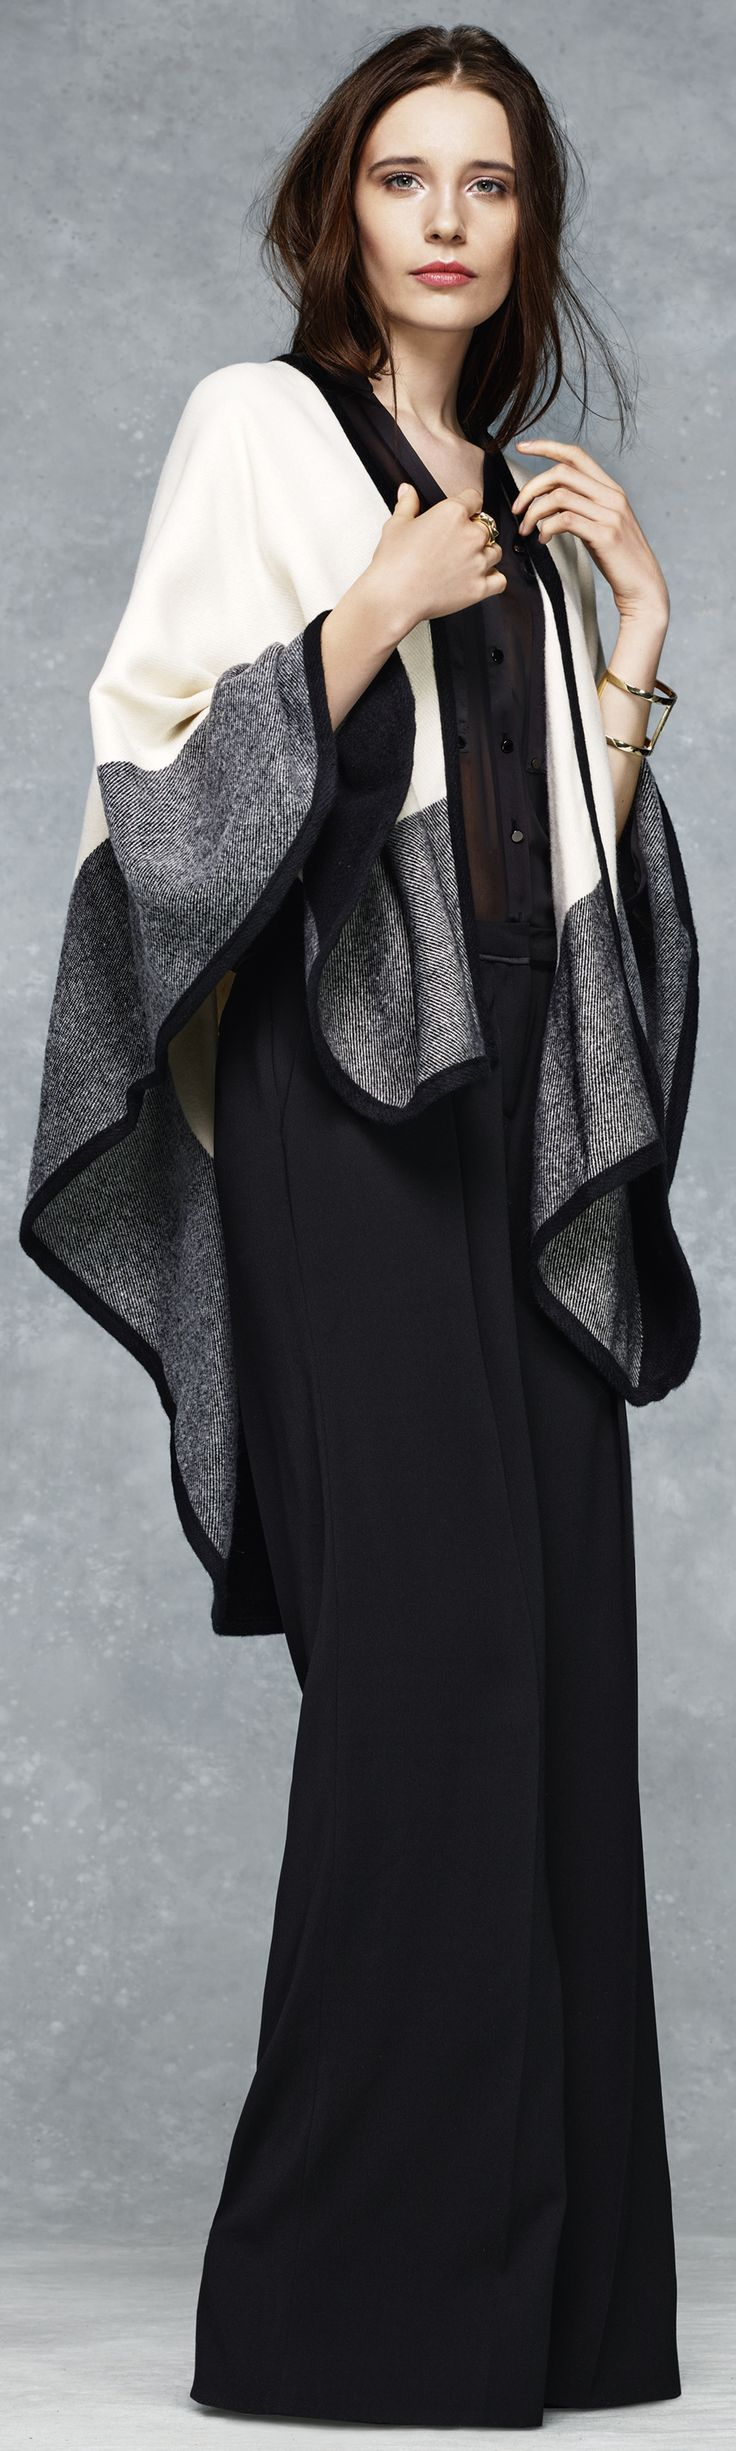 Latest Fashion Trend - Gray and monochrome cape outfit for women - http://www.boomerinas.com/2014/08/26/%ef%bb%bfgray-outfits-for-women-4-tips-for-wearing-gray-in-fall-winter/: